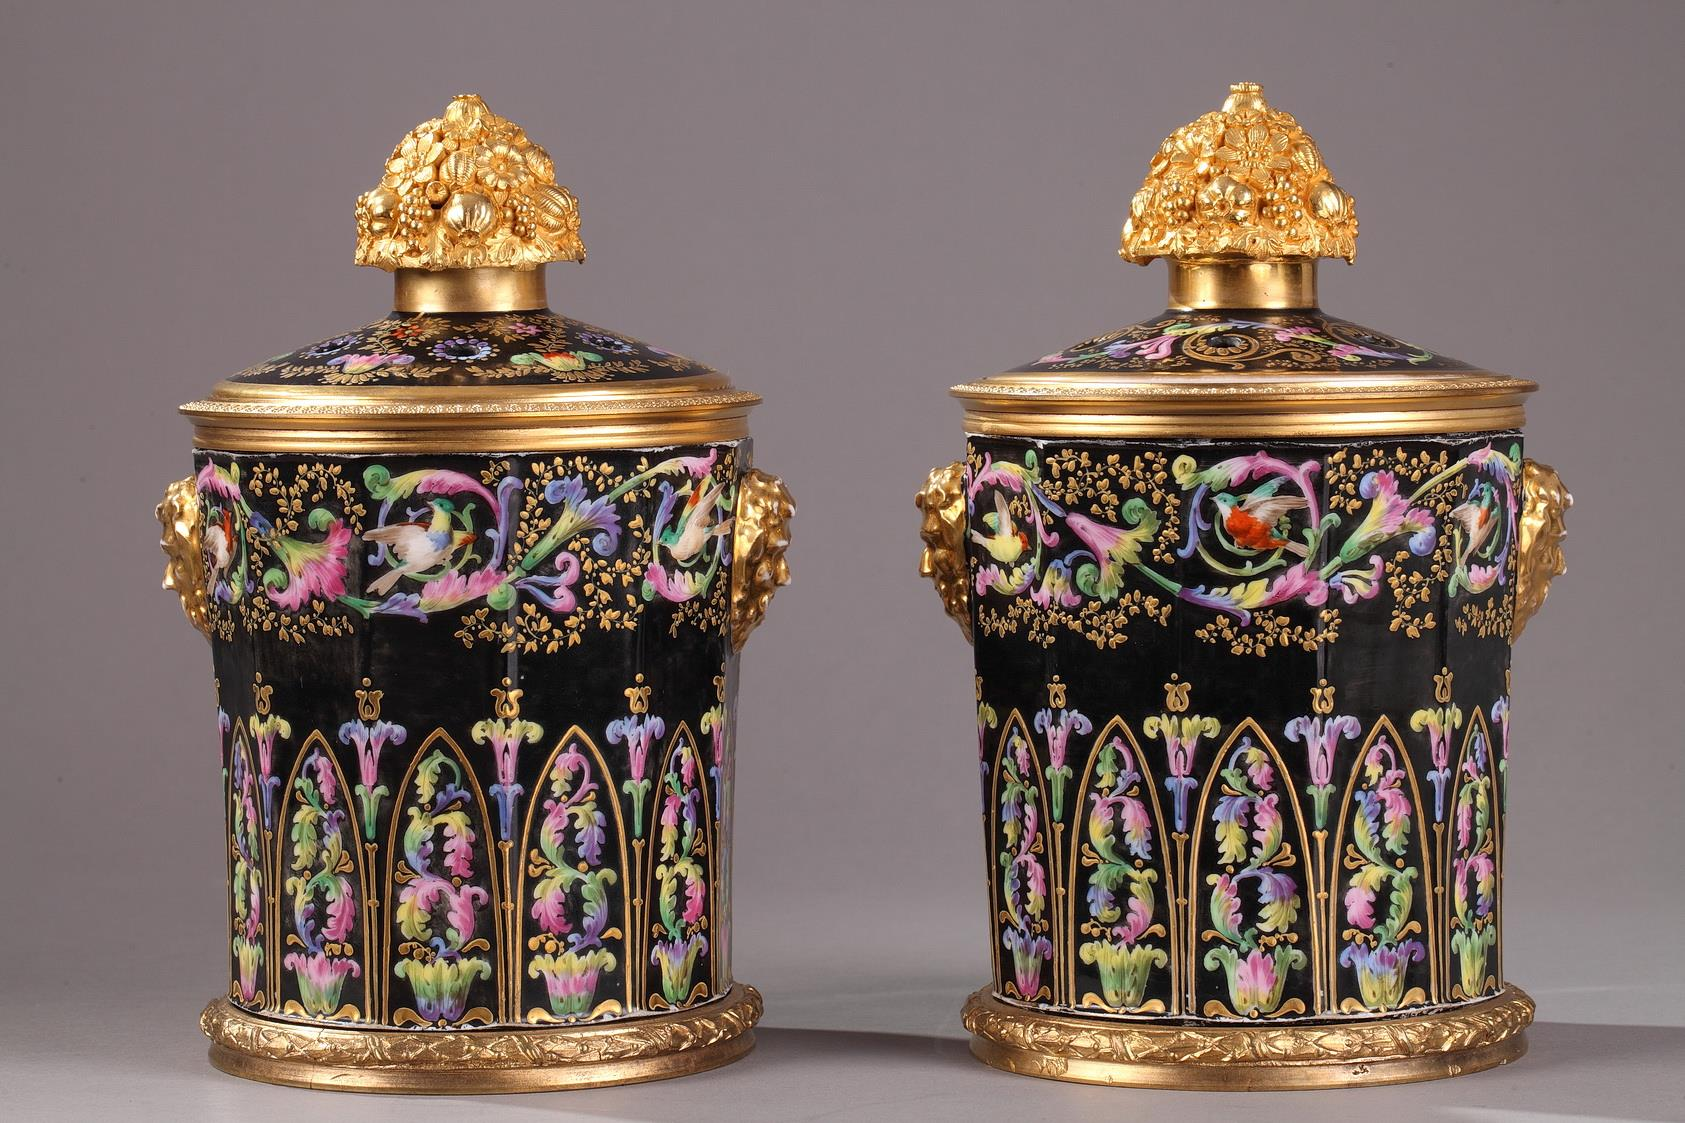 PAIR OF VASES IN PORCELAIN AND GILT BRONZE. <br/ Restauration period.